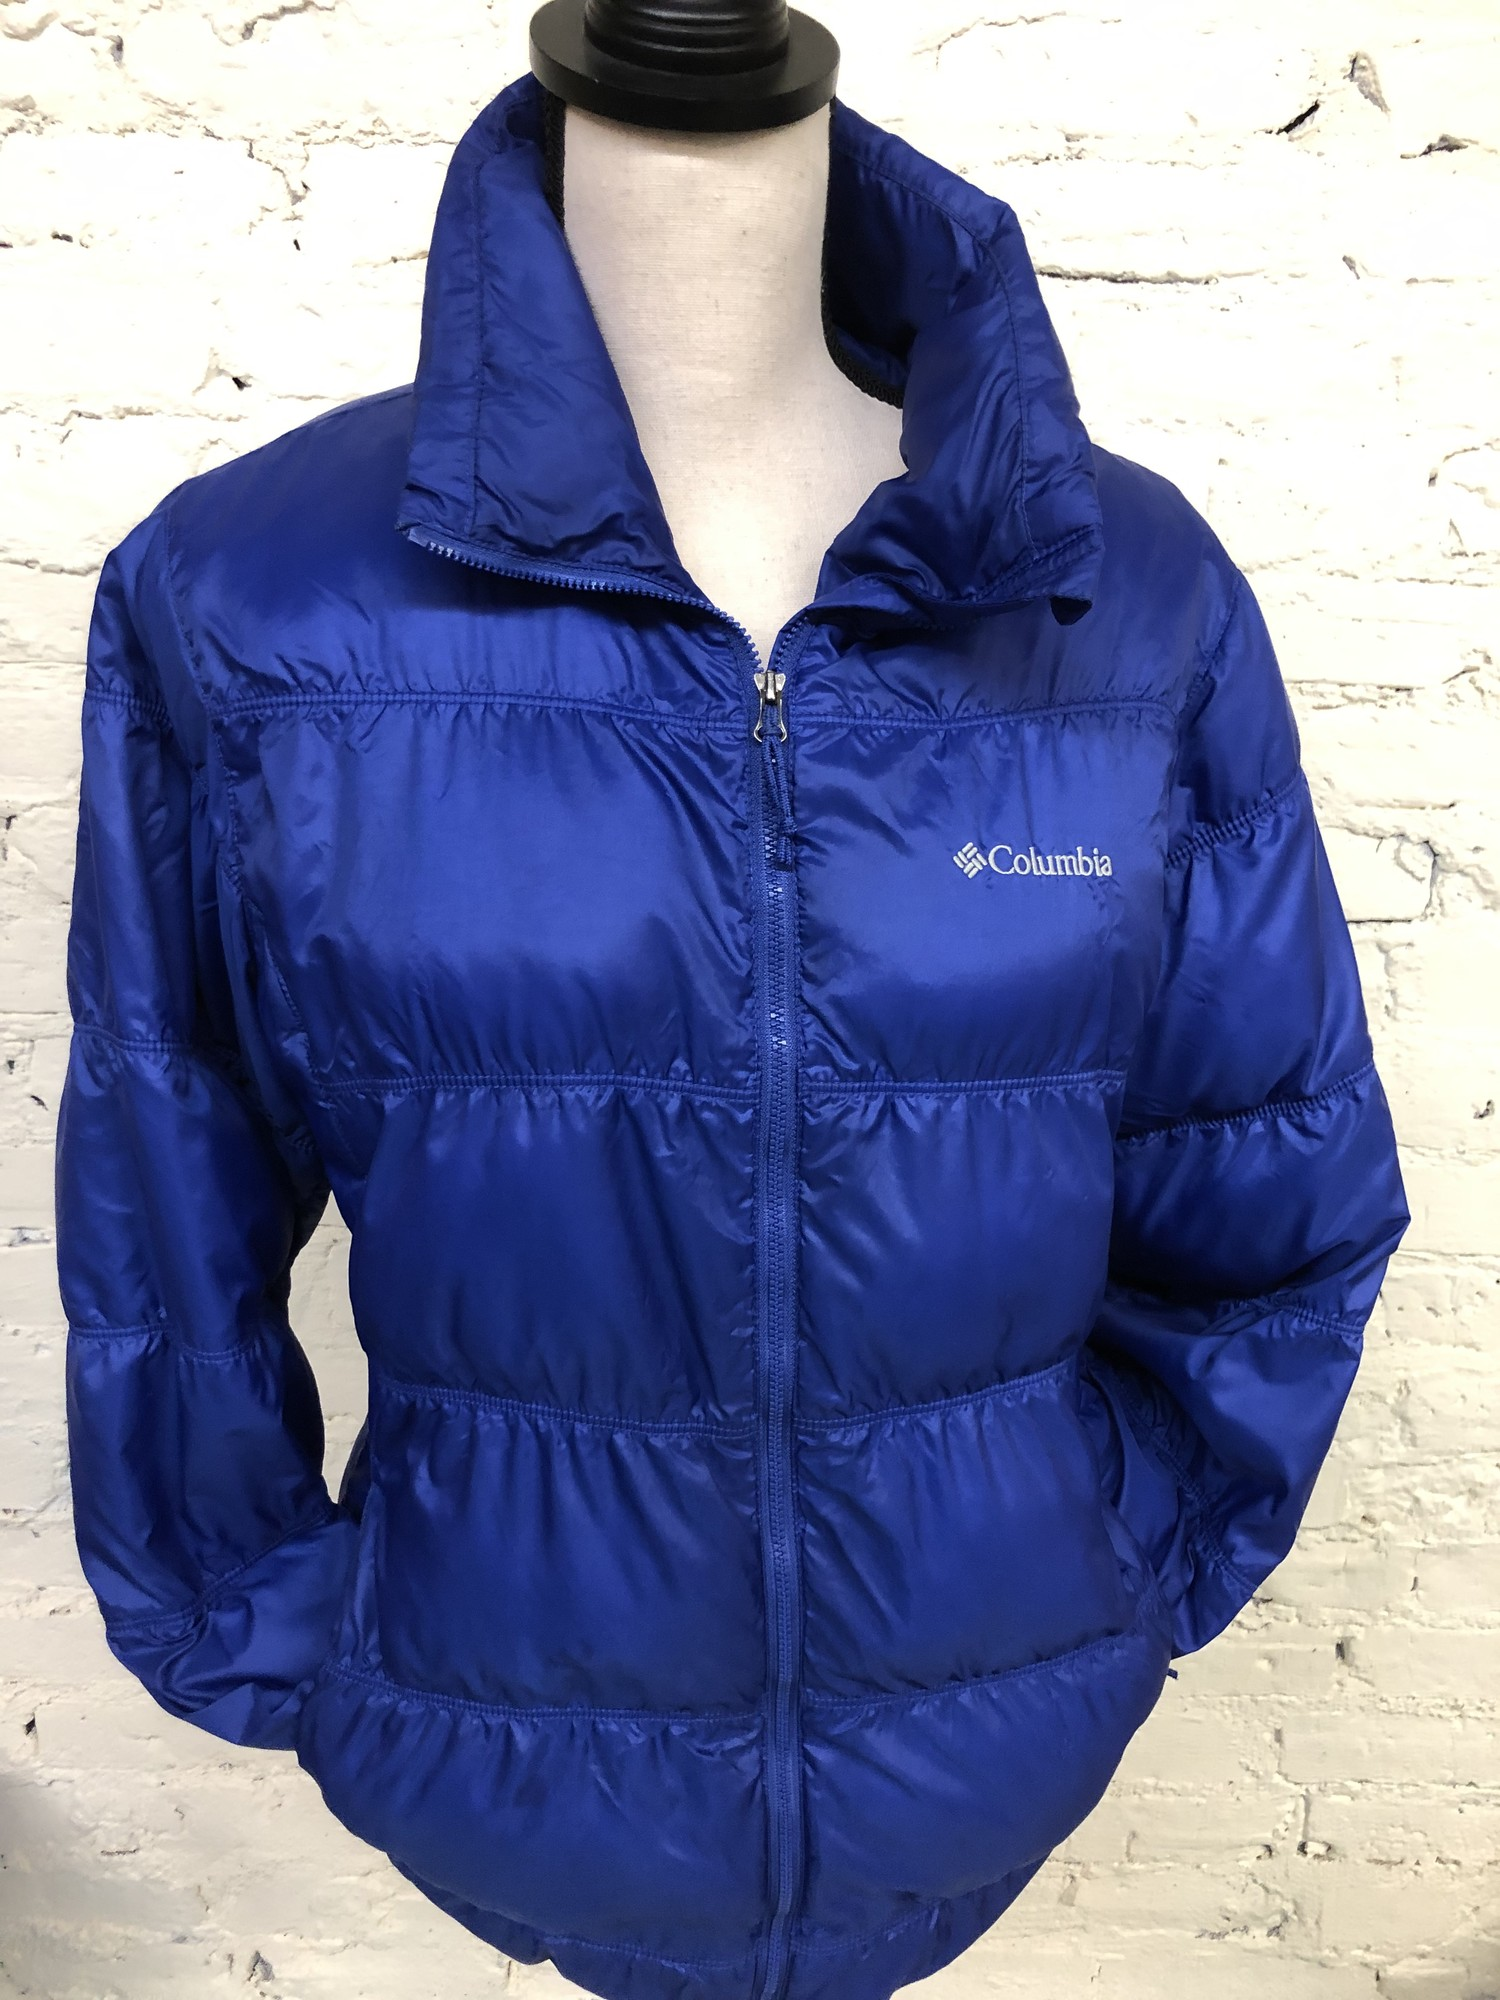 Columbia jacket<br /> Size medium<br /> Purple in color<br /> Puffer type jacket<br /> Sleeve length is approx 22 inches<br /> Jacket length is approx 17 inches<br /> Shoulder to shoulder is approx 16 inches<br /> 100% Polyester